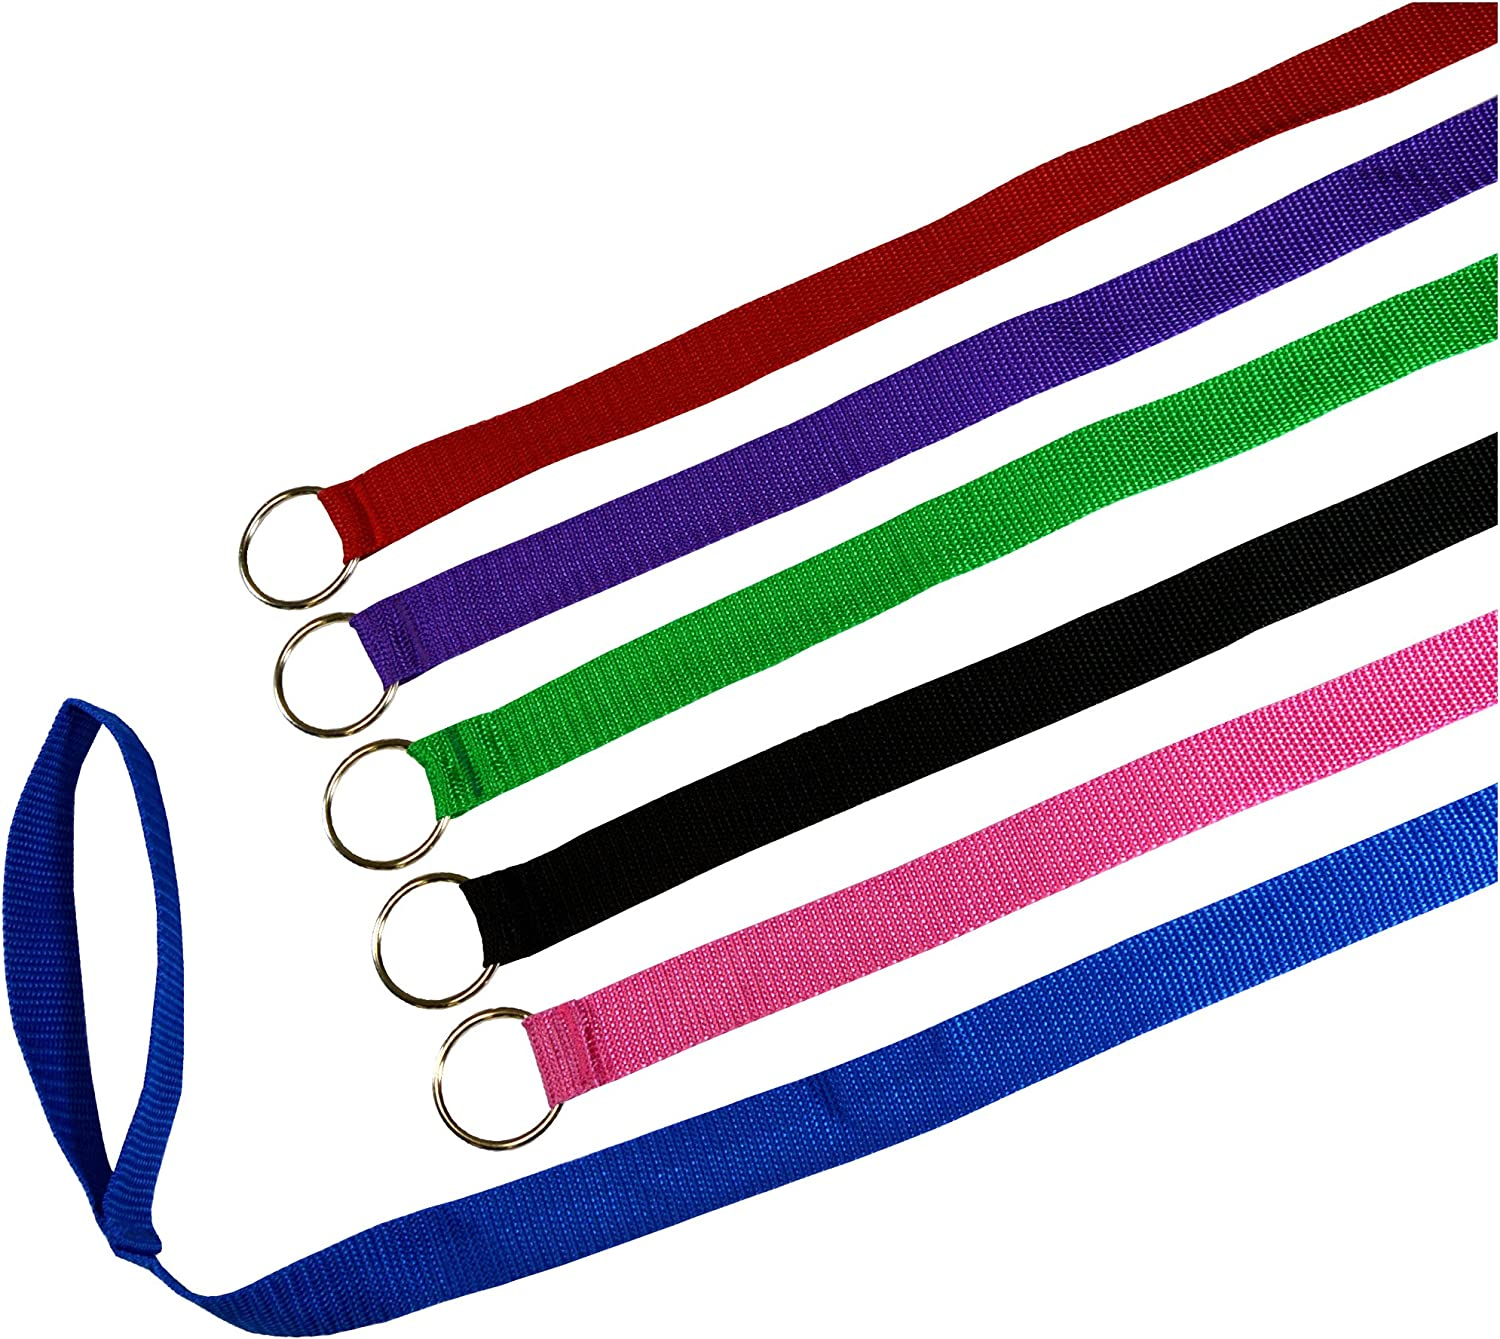 "6 Foot Slip Lead, Slip Leads, Kennel Leads with O Ring for Dog Pet Animal Control Grooming, Shelter, Rescues, Vet, Veterinarian, Doggy Daycare (Size: 6' x 1"", Colors: Various) 81uv14BPWpL"